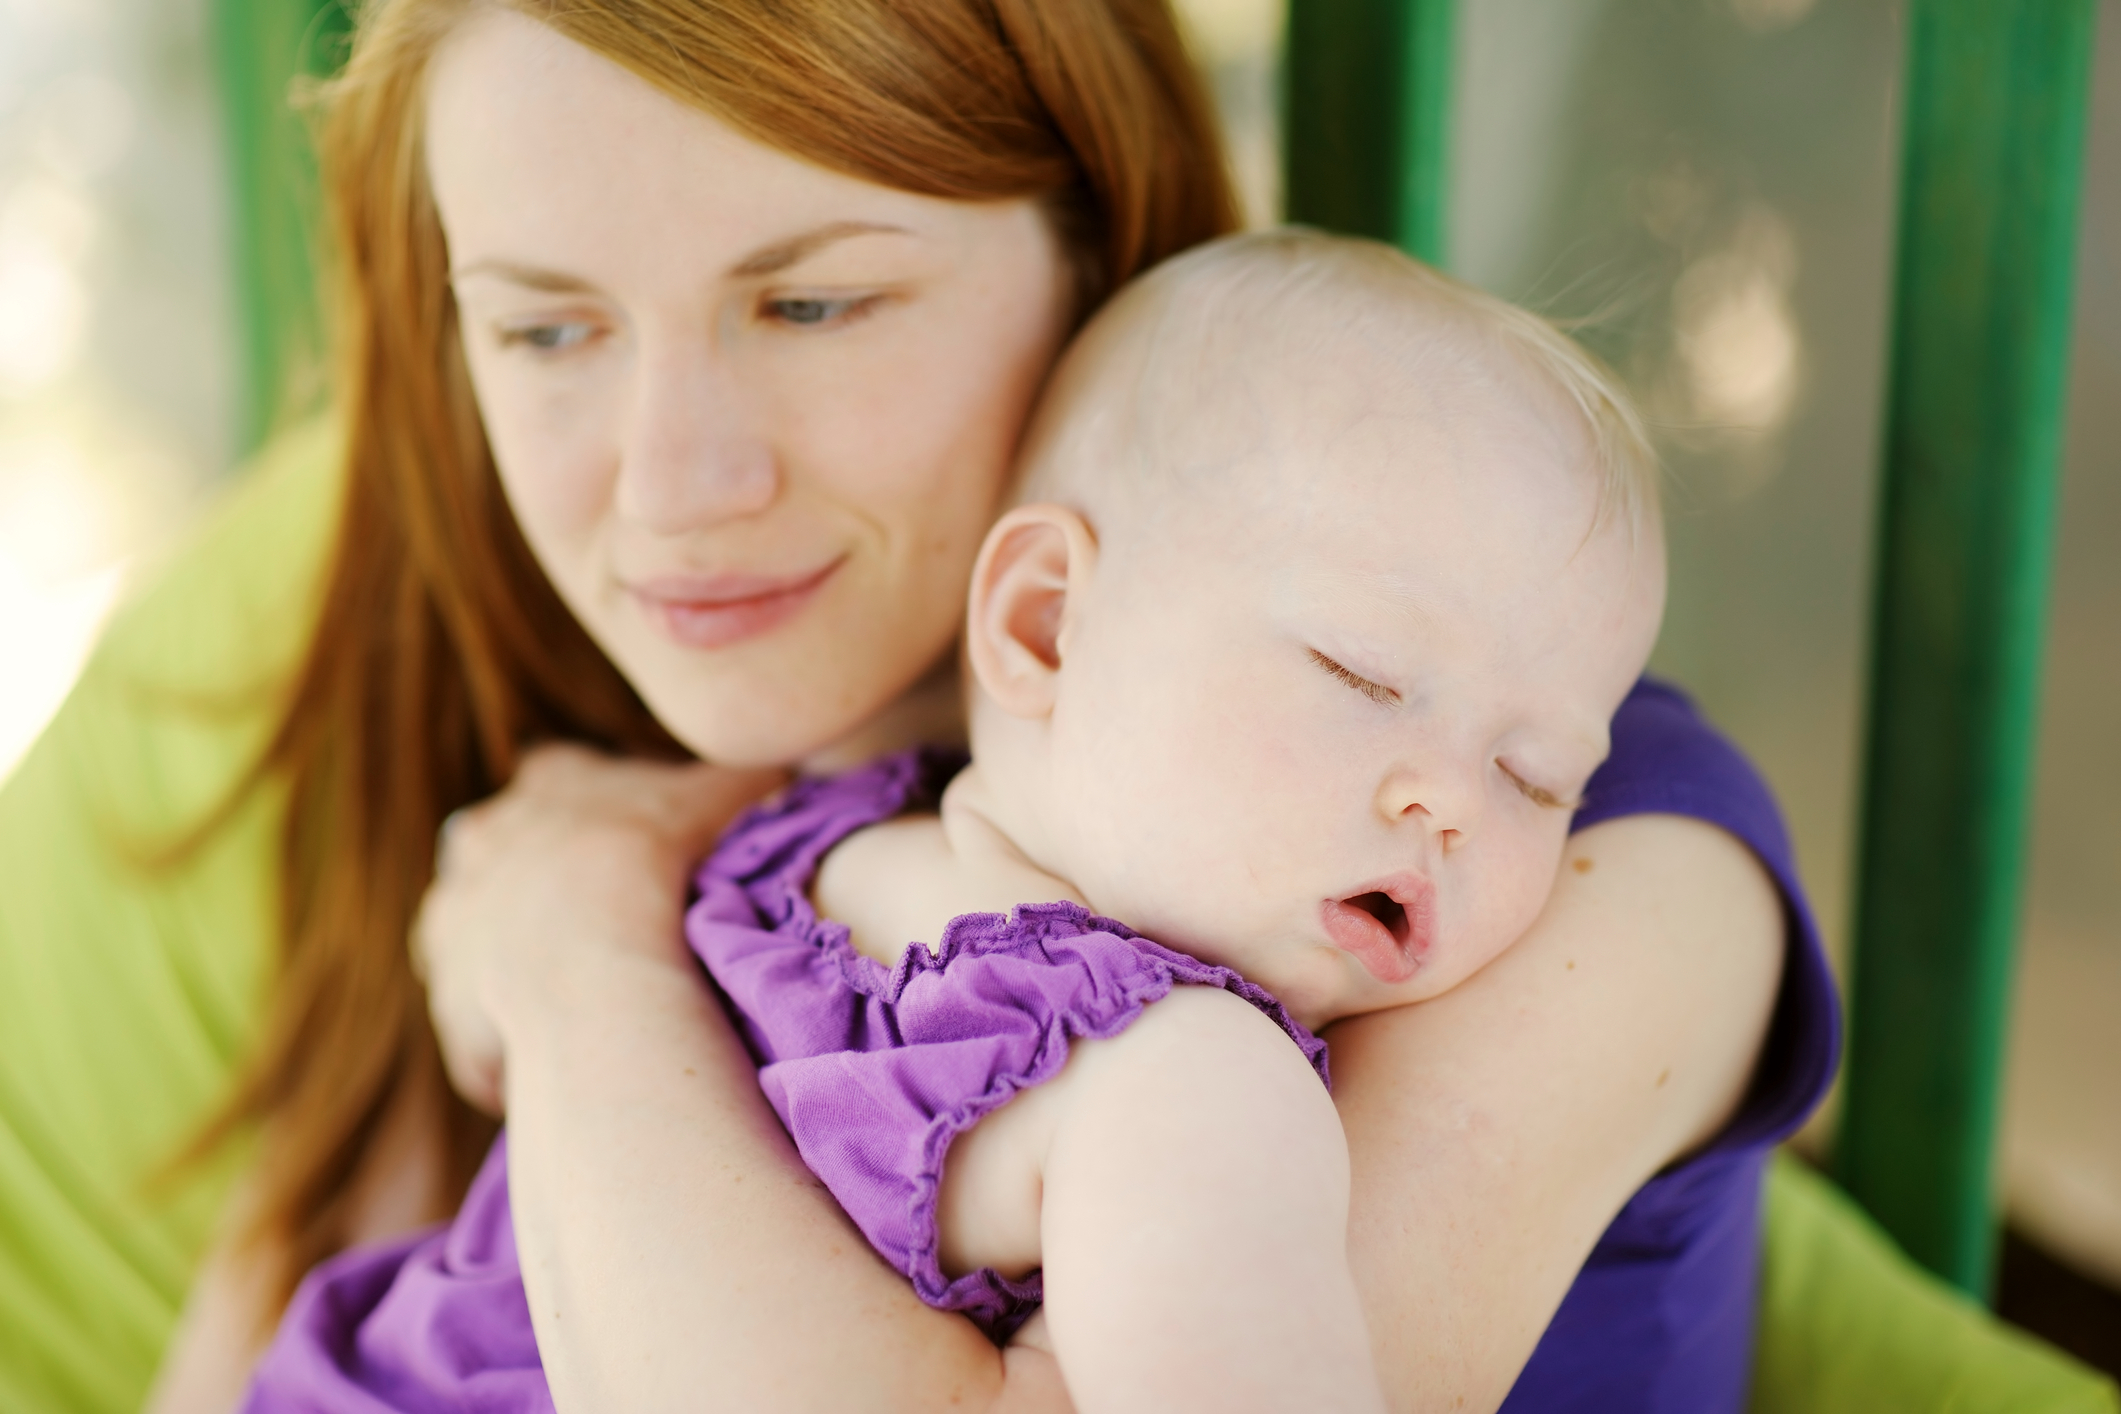 Quarrels of parents affect the sleep of infants